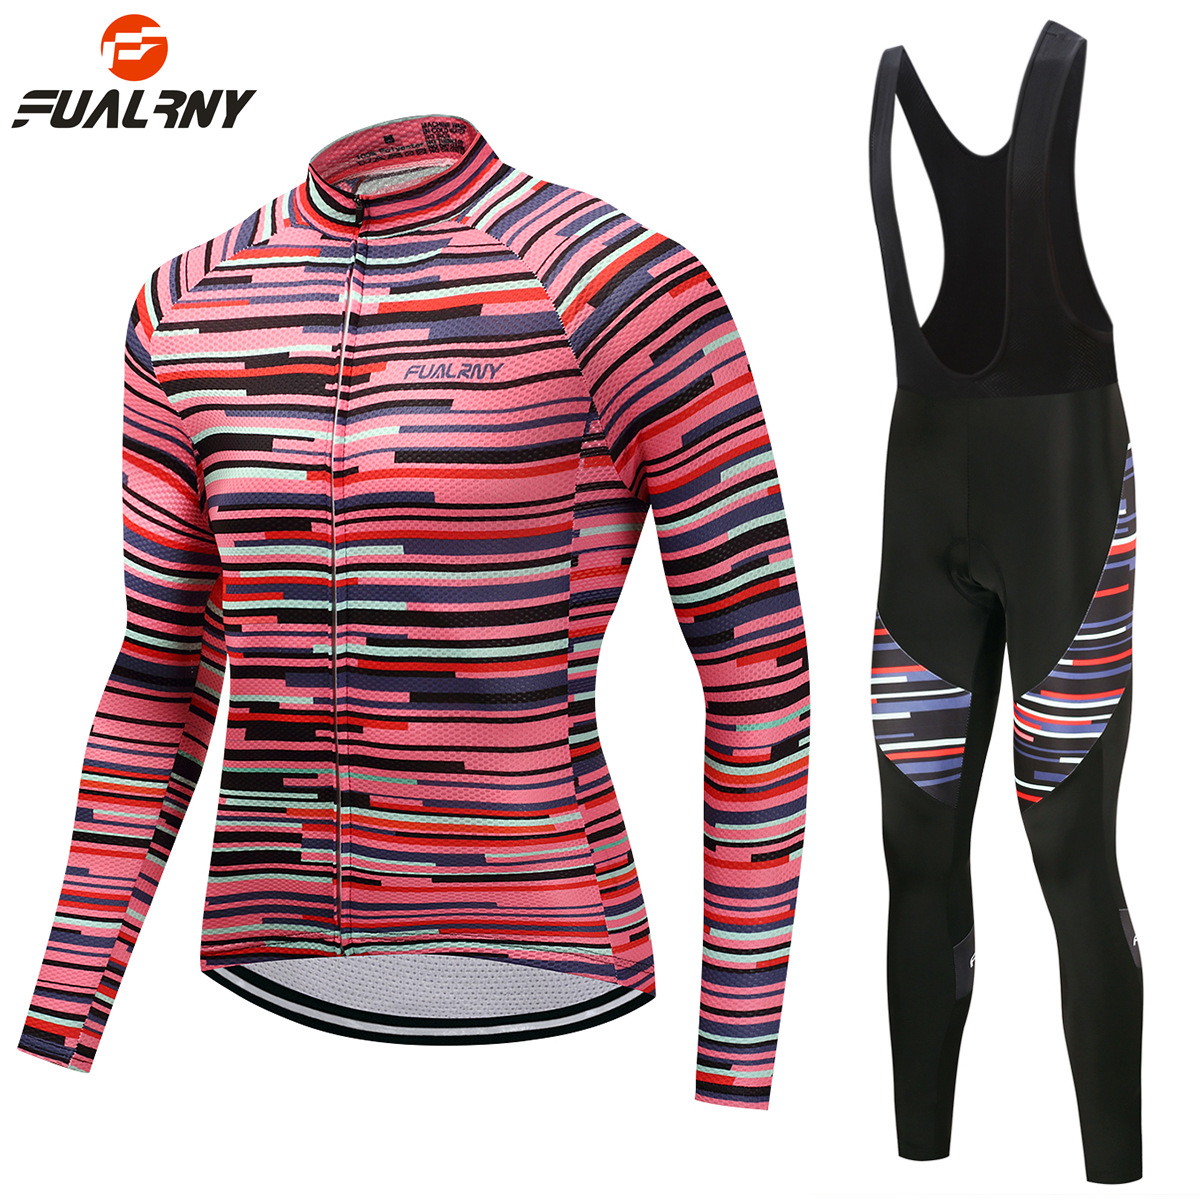 FUALRNY New Pro Team Men Womens Long Sleeve Cycling Jersey Set Autumn Winter MTB Racing Bicycle Clothing Uniform Ropa Ciclismo<br>